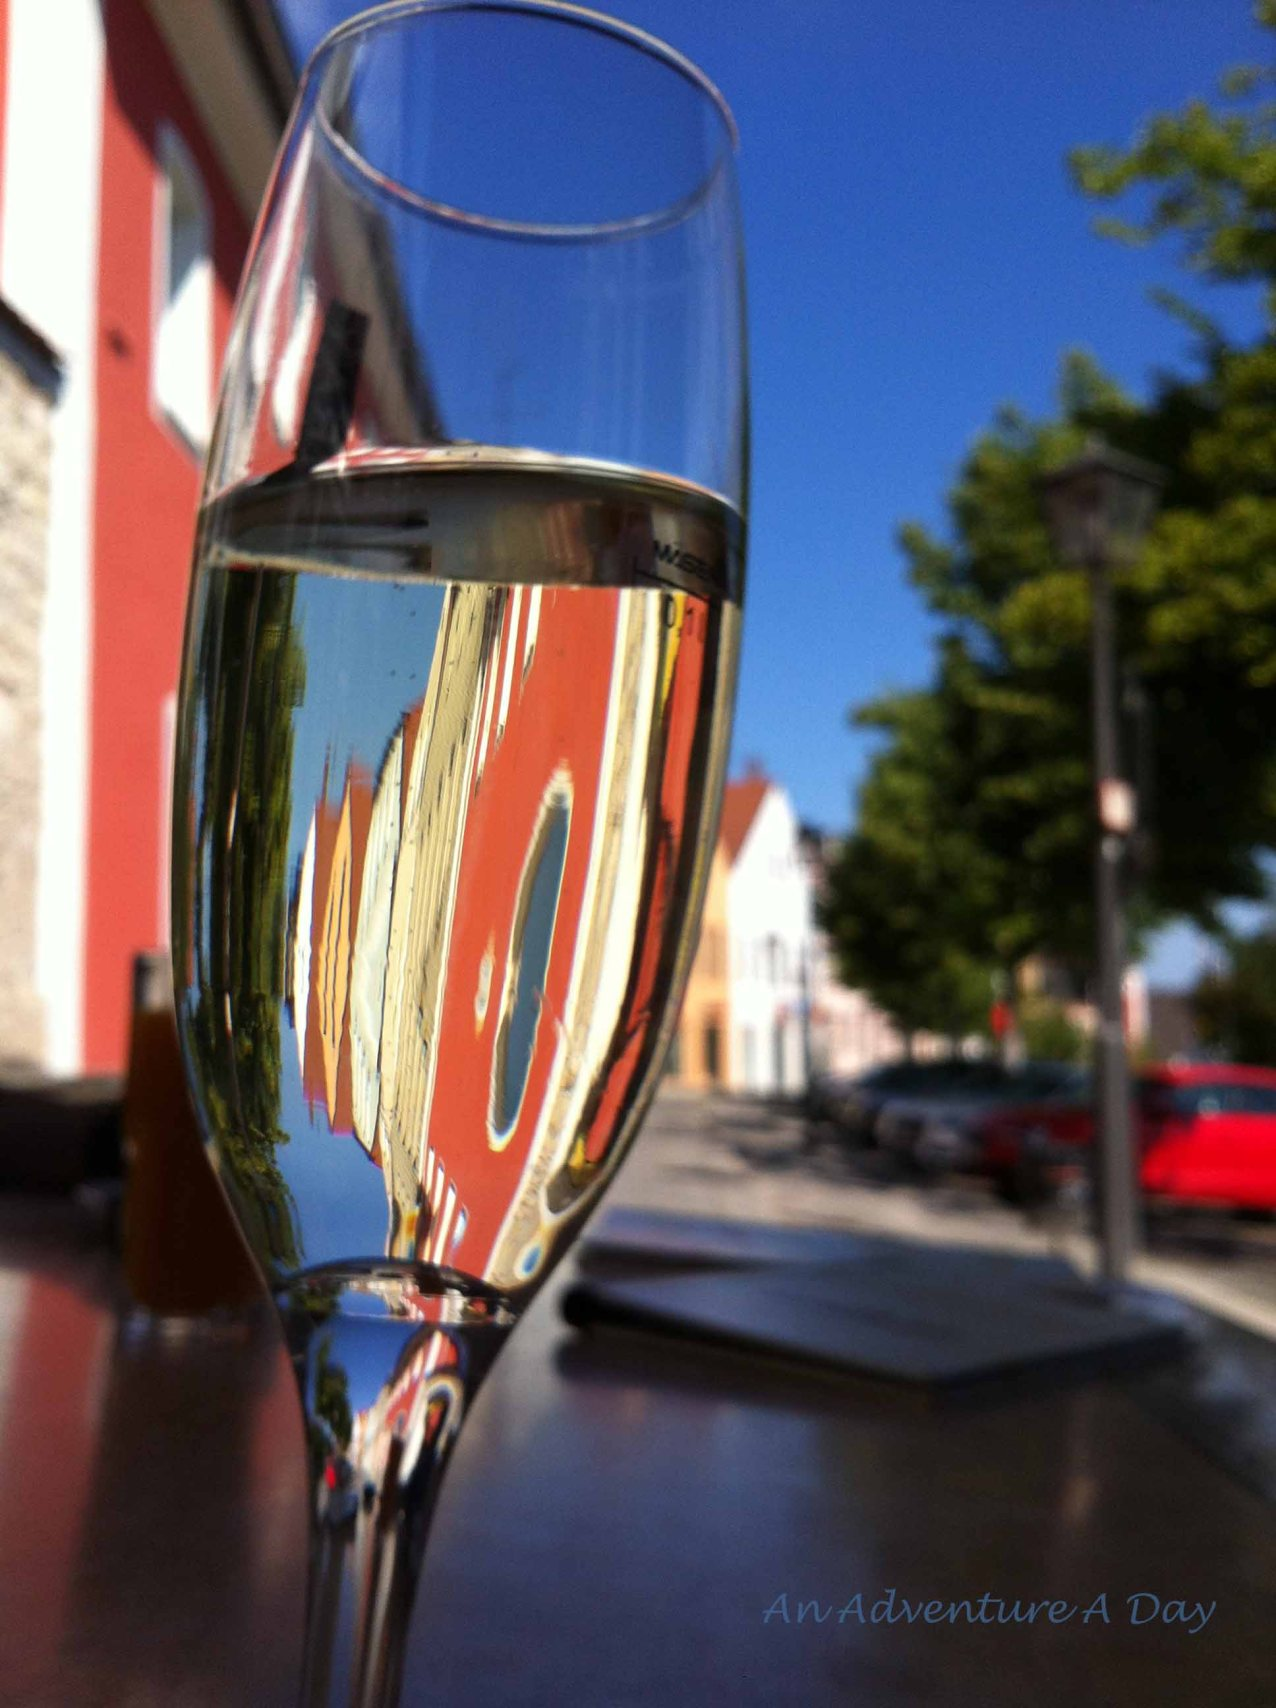 A leisurely glass of Secco on a lovely summer day.